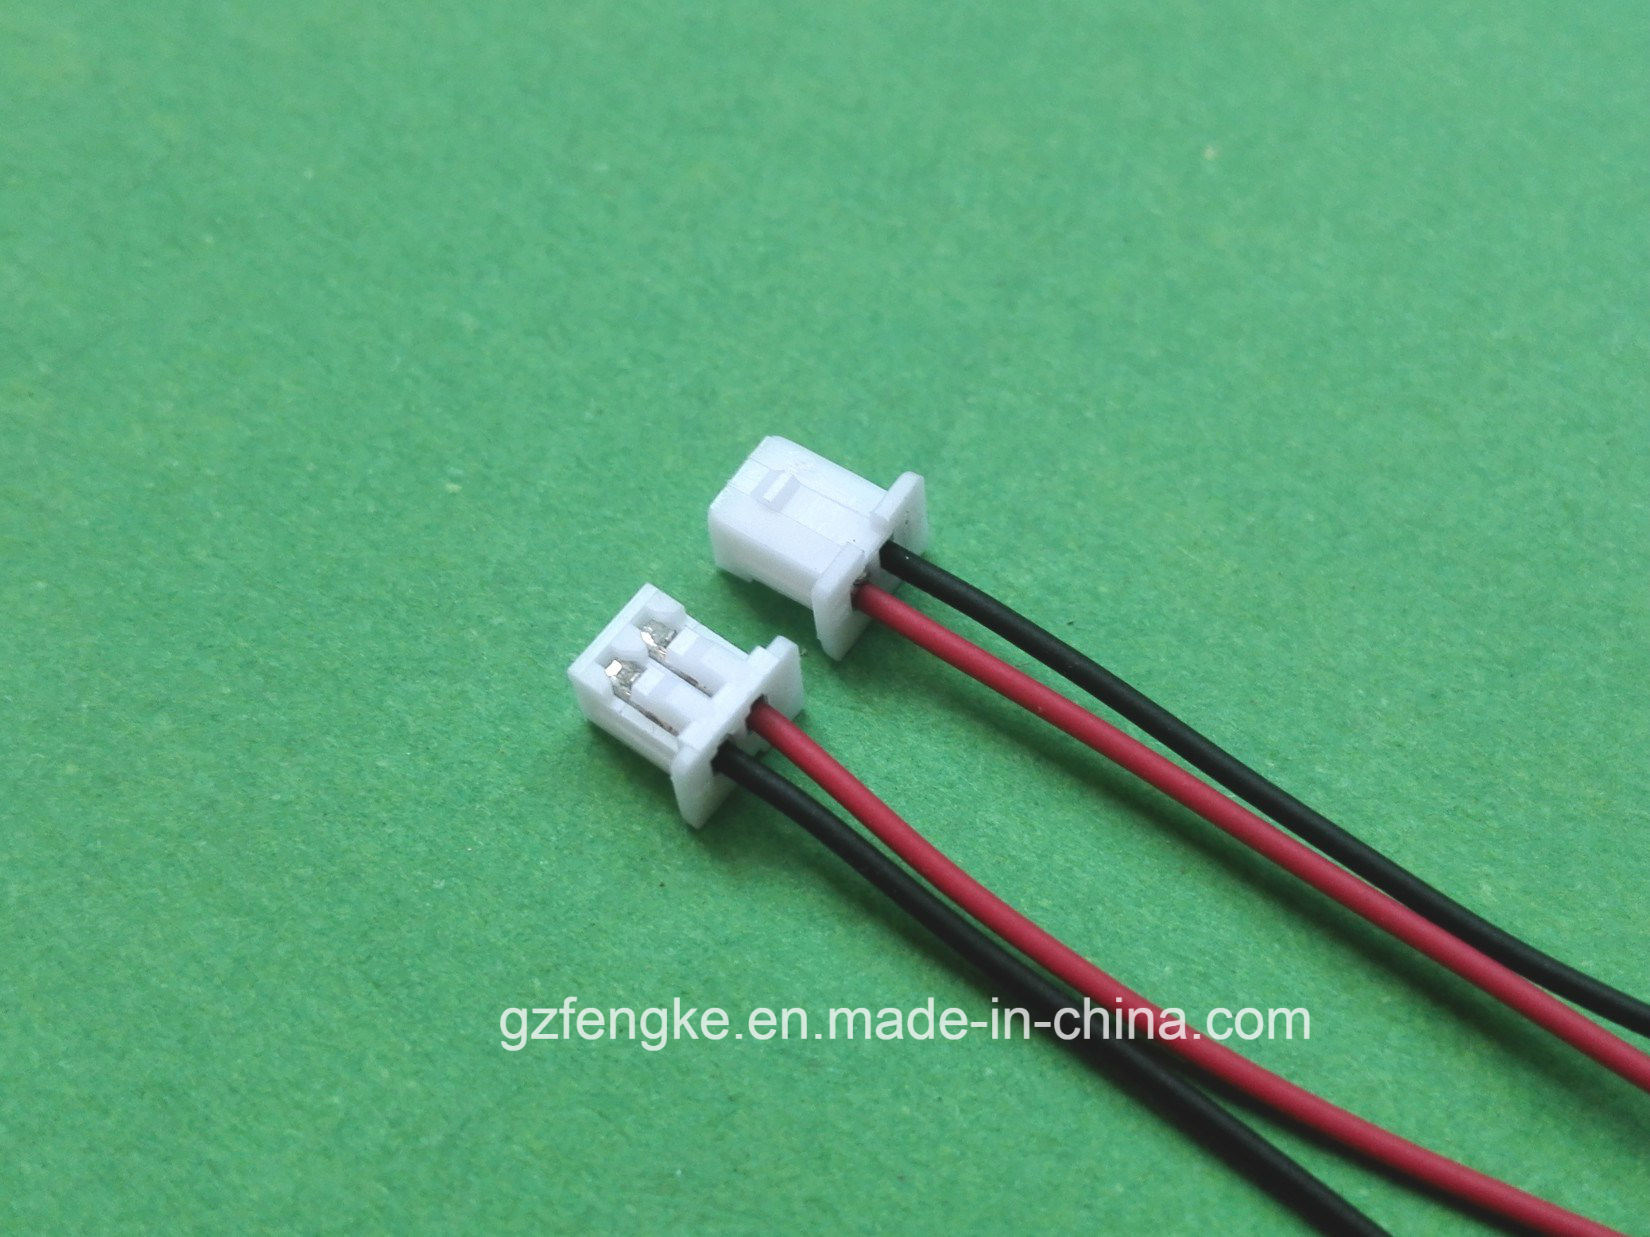 hight resolution of china wire connector molex wire connector molex manufacturers suppliers price made in china com